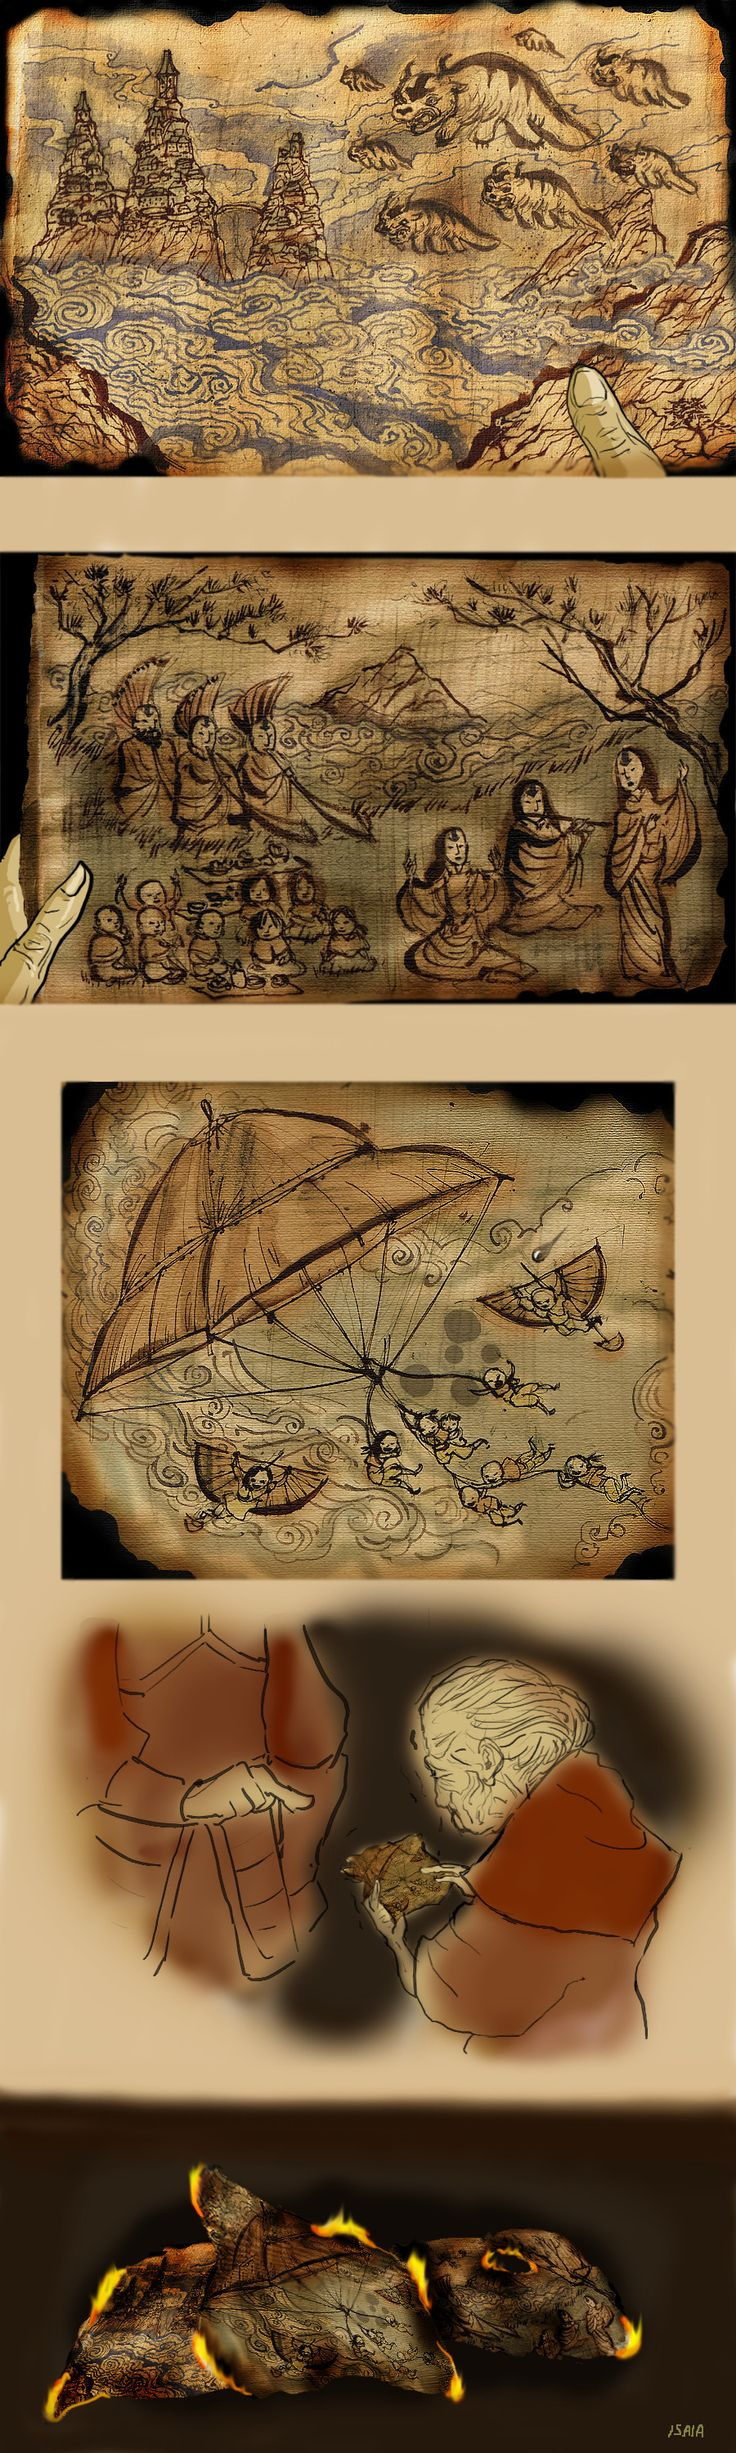 all that's left of the Air Nomads...: Airbender Korra, Chinese Drawings, Deviantart, Airbender Legends, Avatar Art, Cool Art, Air Nomadic, Isaia, Drawings Style